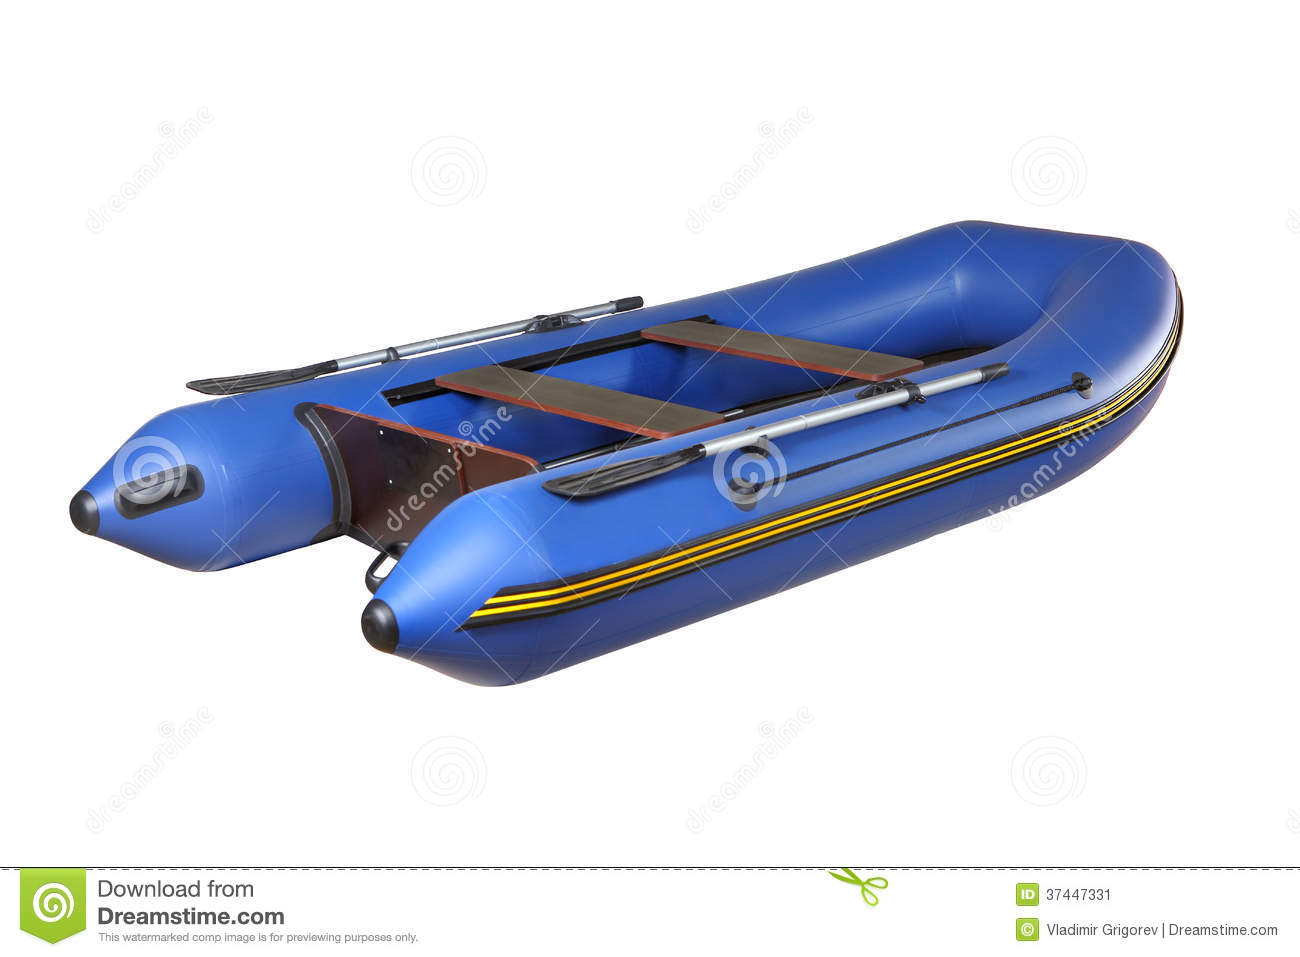 Blue Rubber Inflatable Boat PVC With Oars, Isolated On White. Stock Image - Image: 37447331